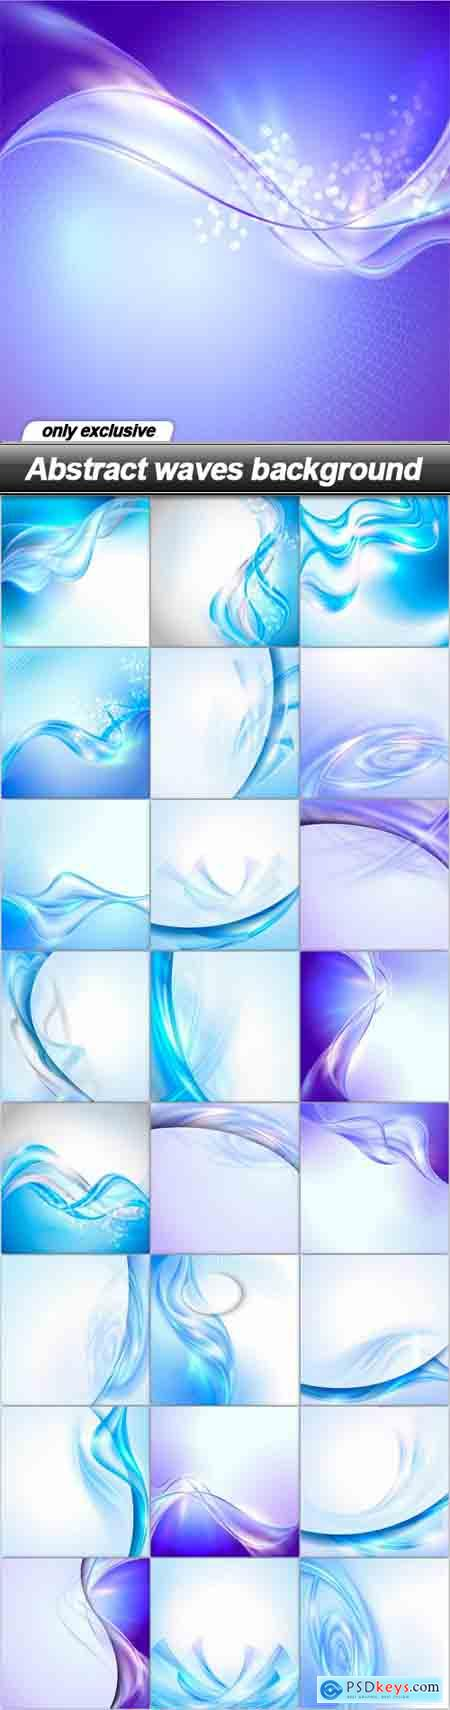 Abstract waves background - 25 EPS